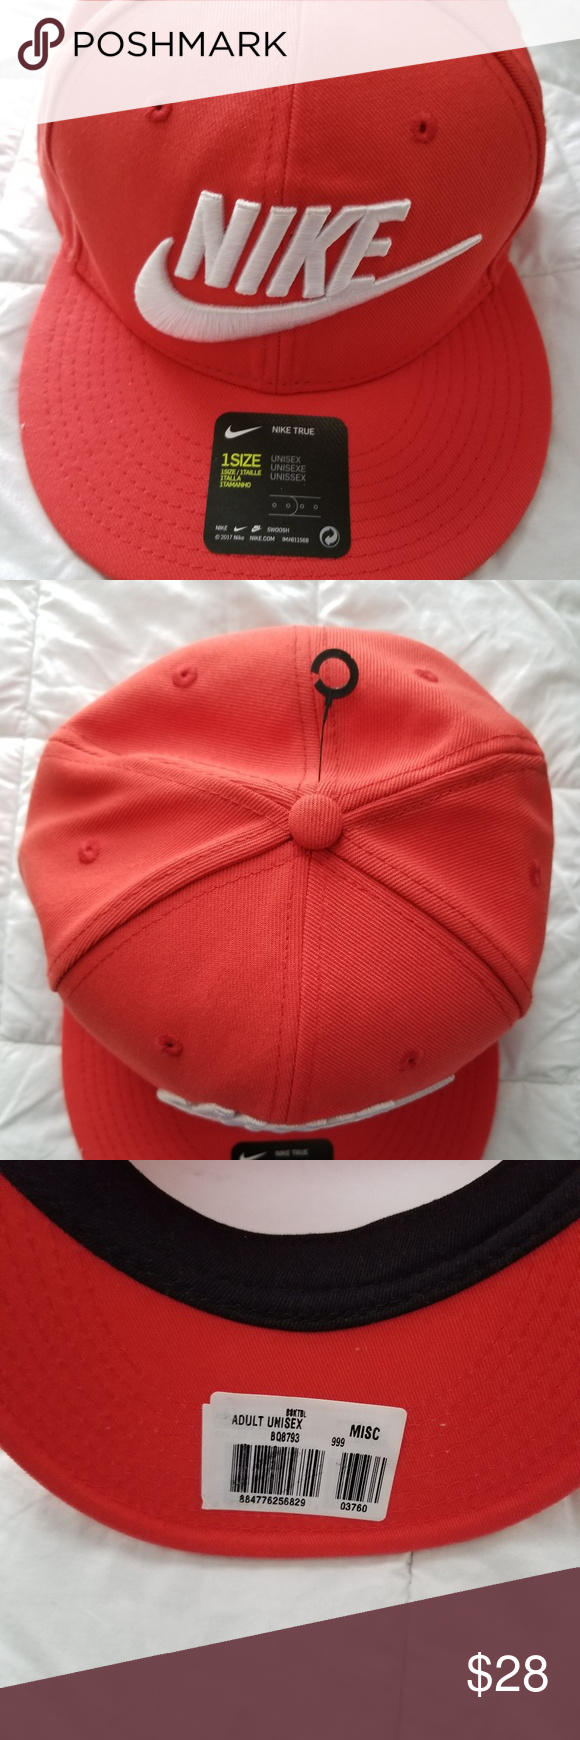 5bab1736214bb New with tag nike unisex hat New with tag authentic nike unisex hat.The Nike